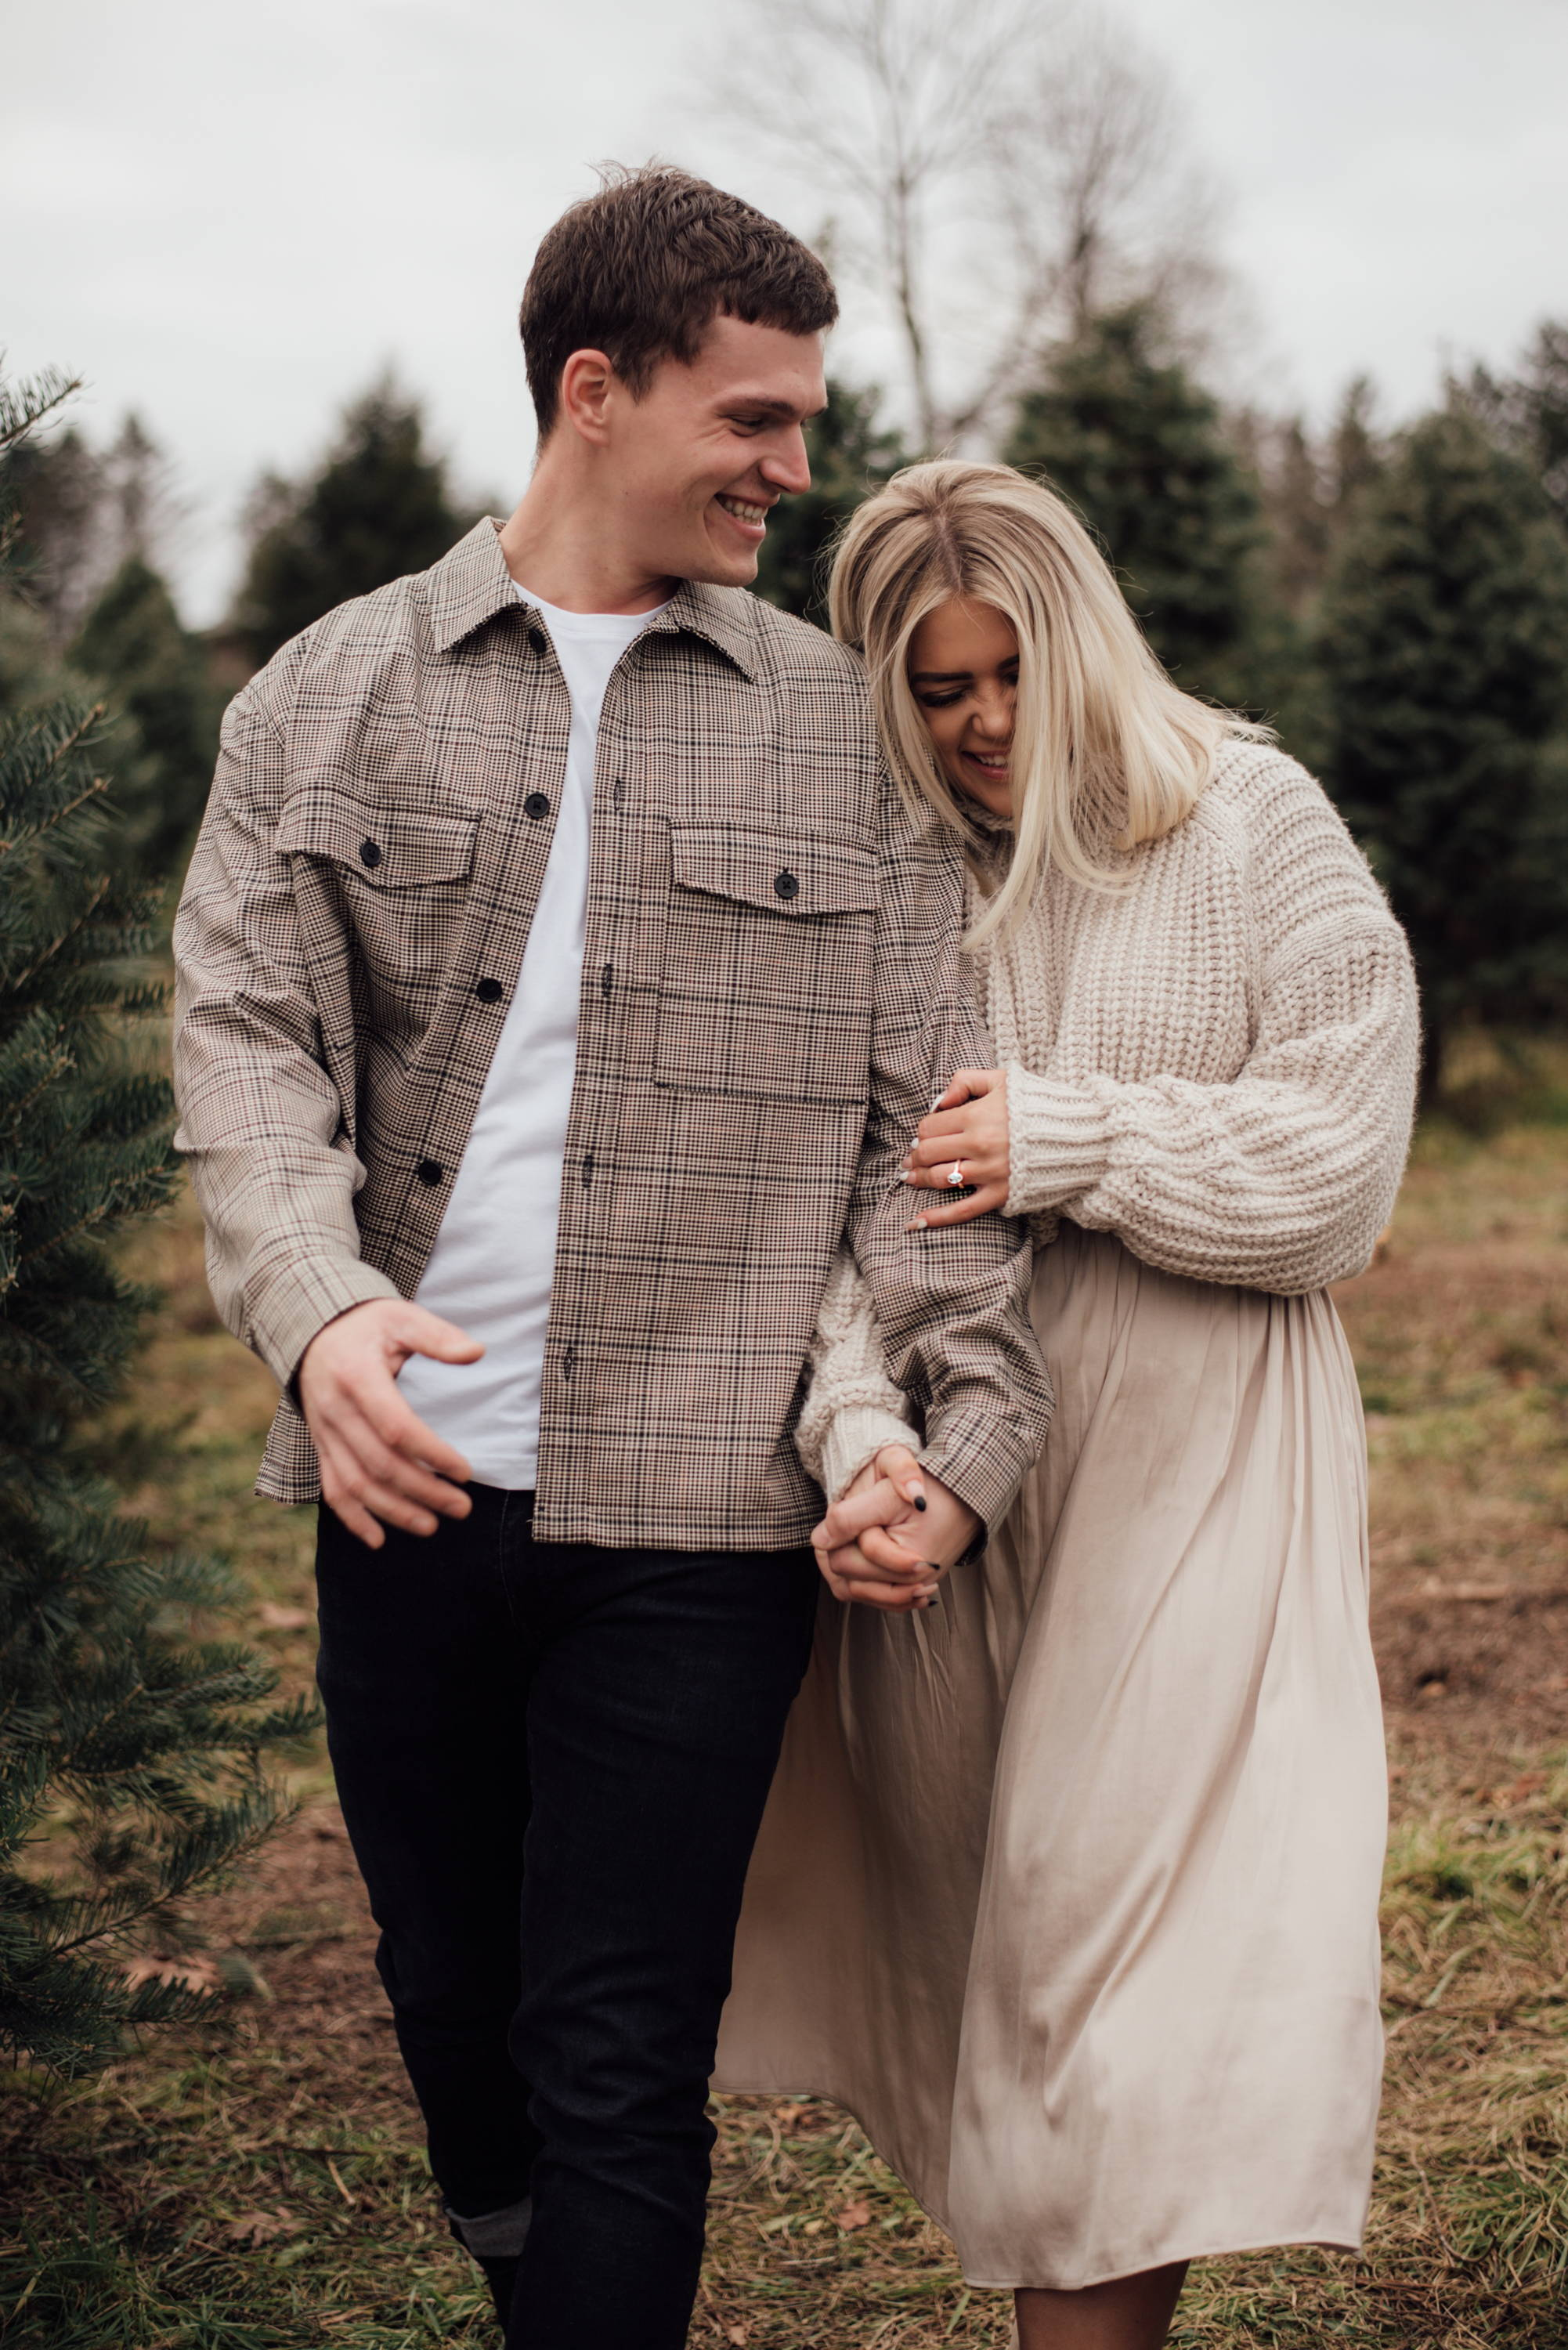 Henne Engagement Ring Couple James & Kelsey Smile and Laugh at a Christmas Tree Farm